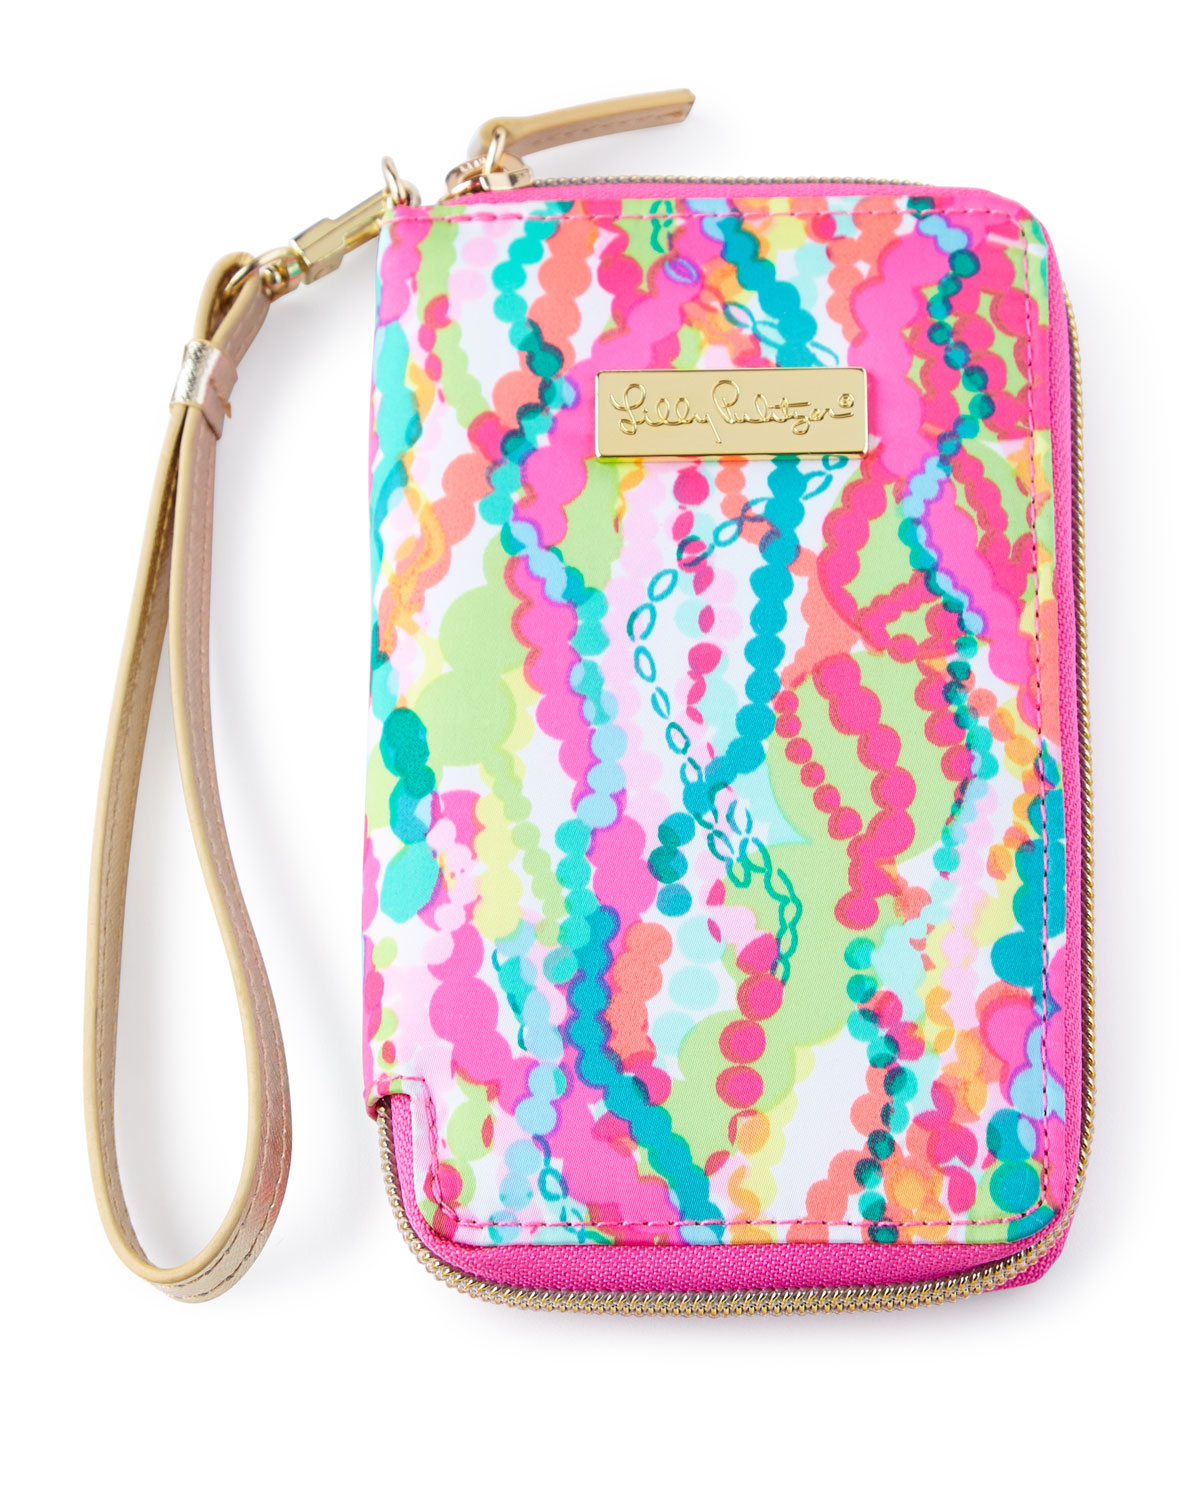 Pink Multi-Print Tiki Palm iPhone 6 Wristlet, Multi Colors - Lilly Pulitzer